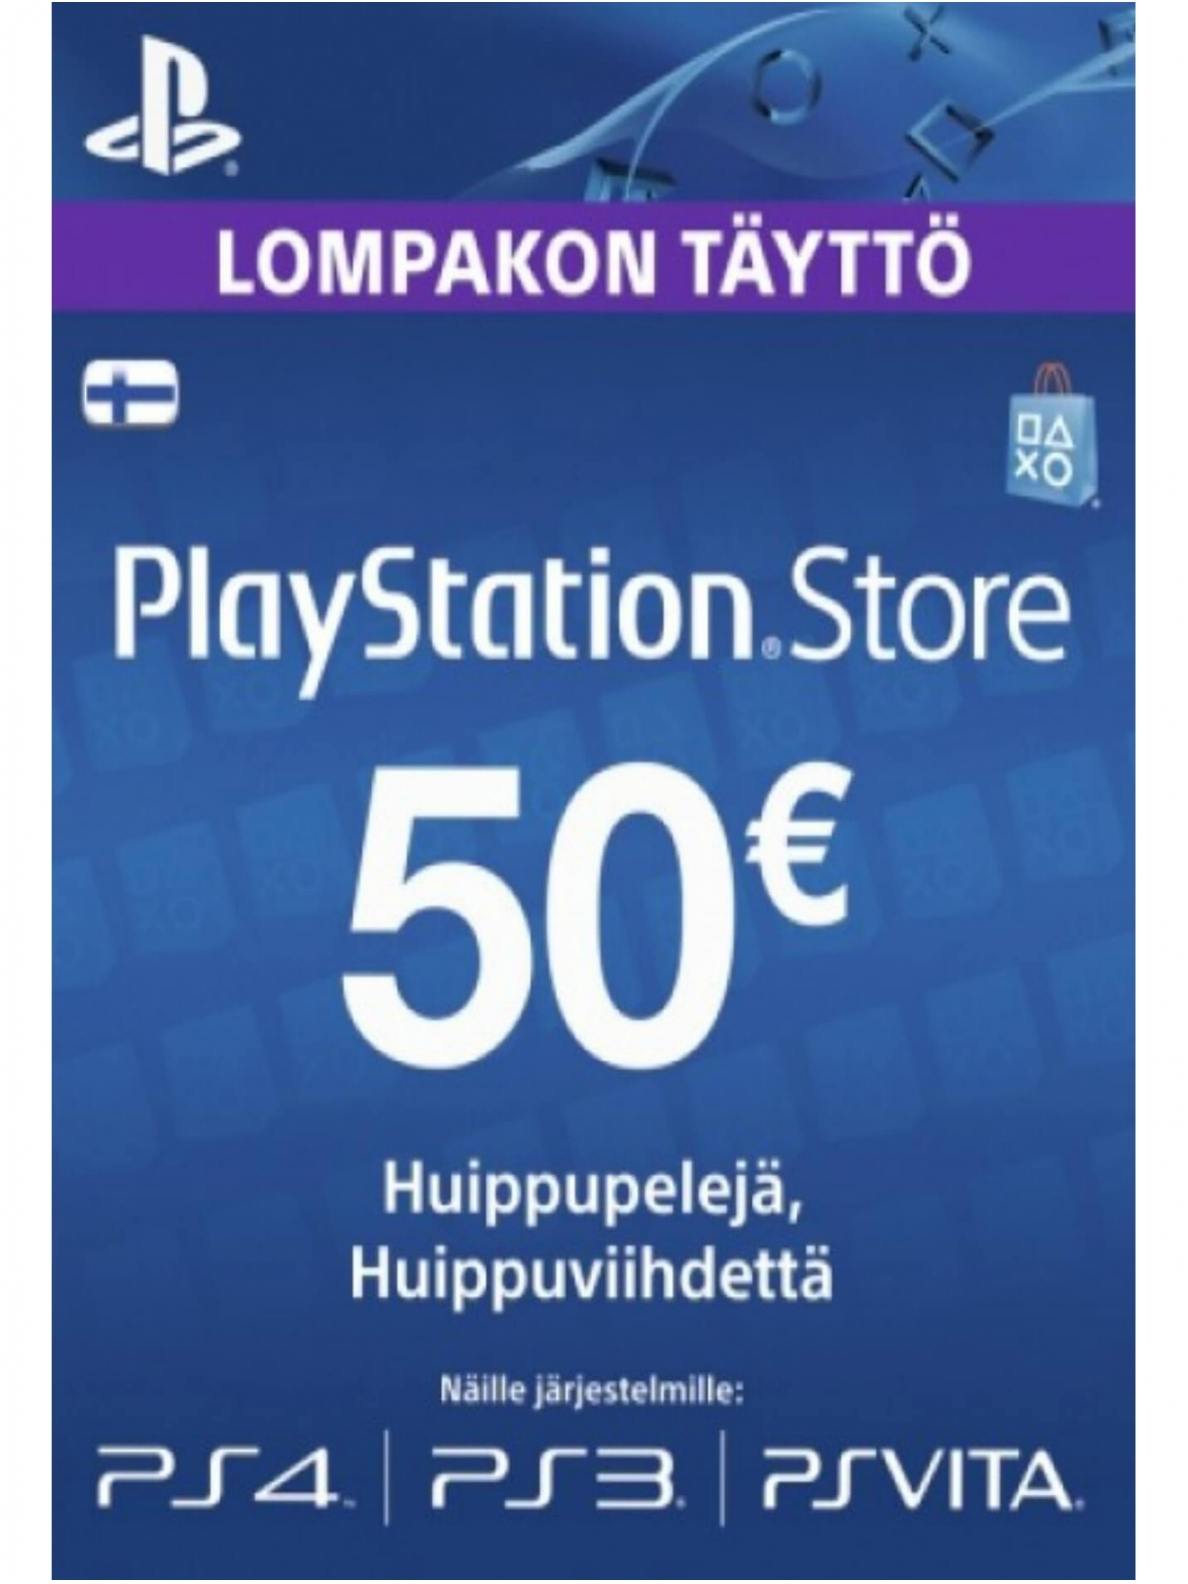 PSN FINLAND CARD €50 EUR for PS4, PS3, PS Vita